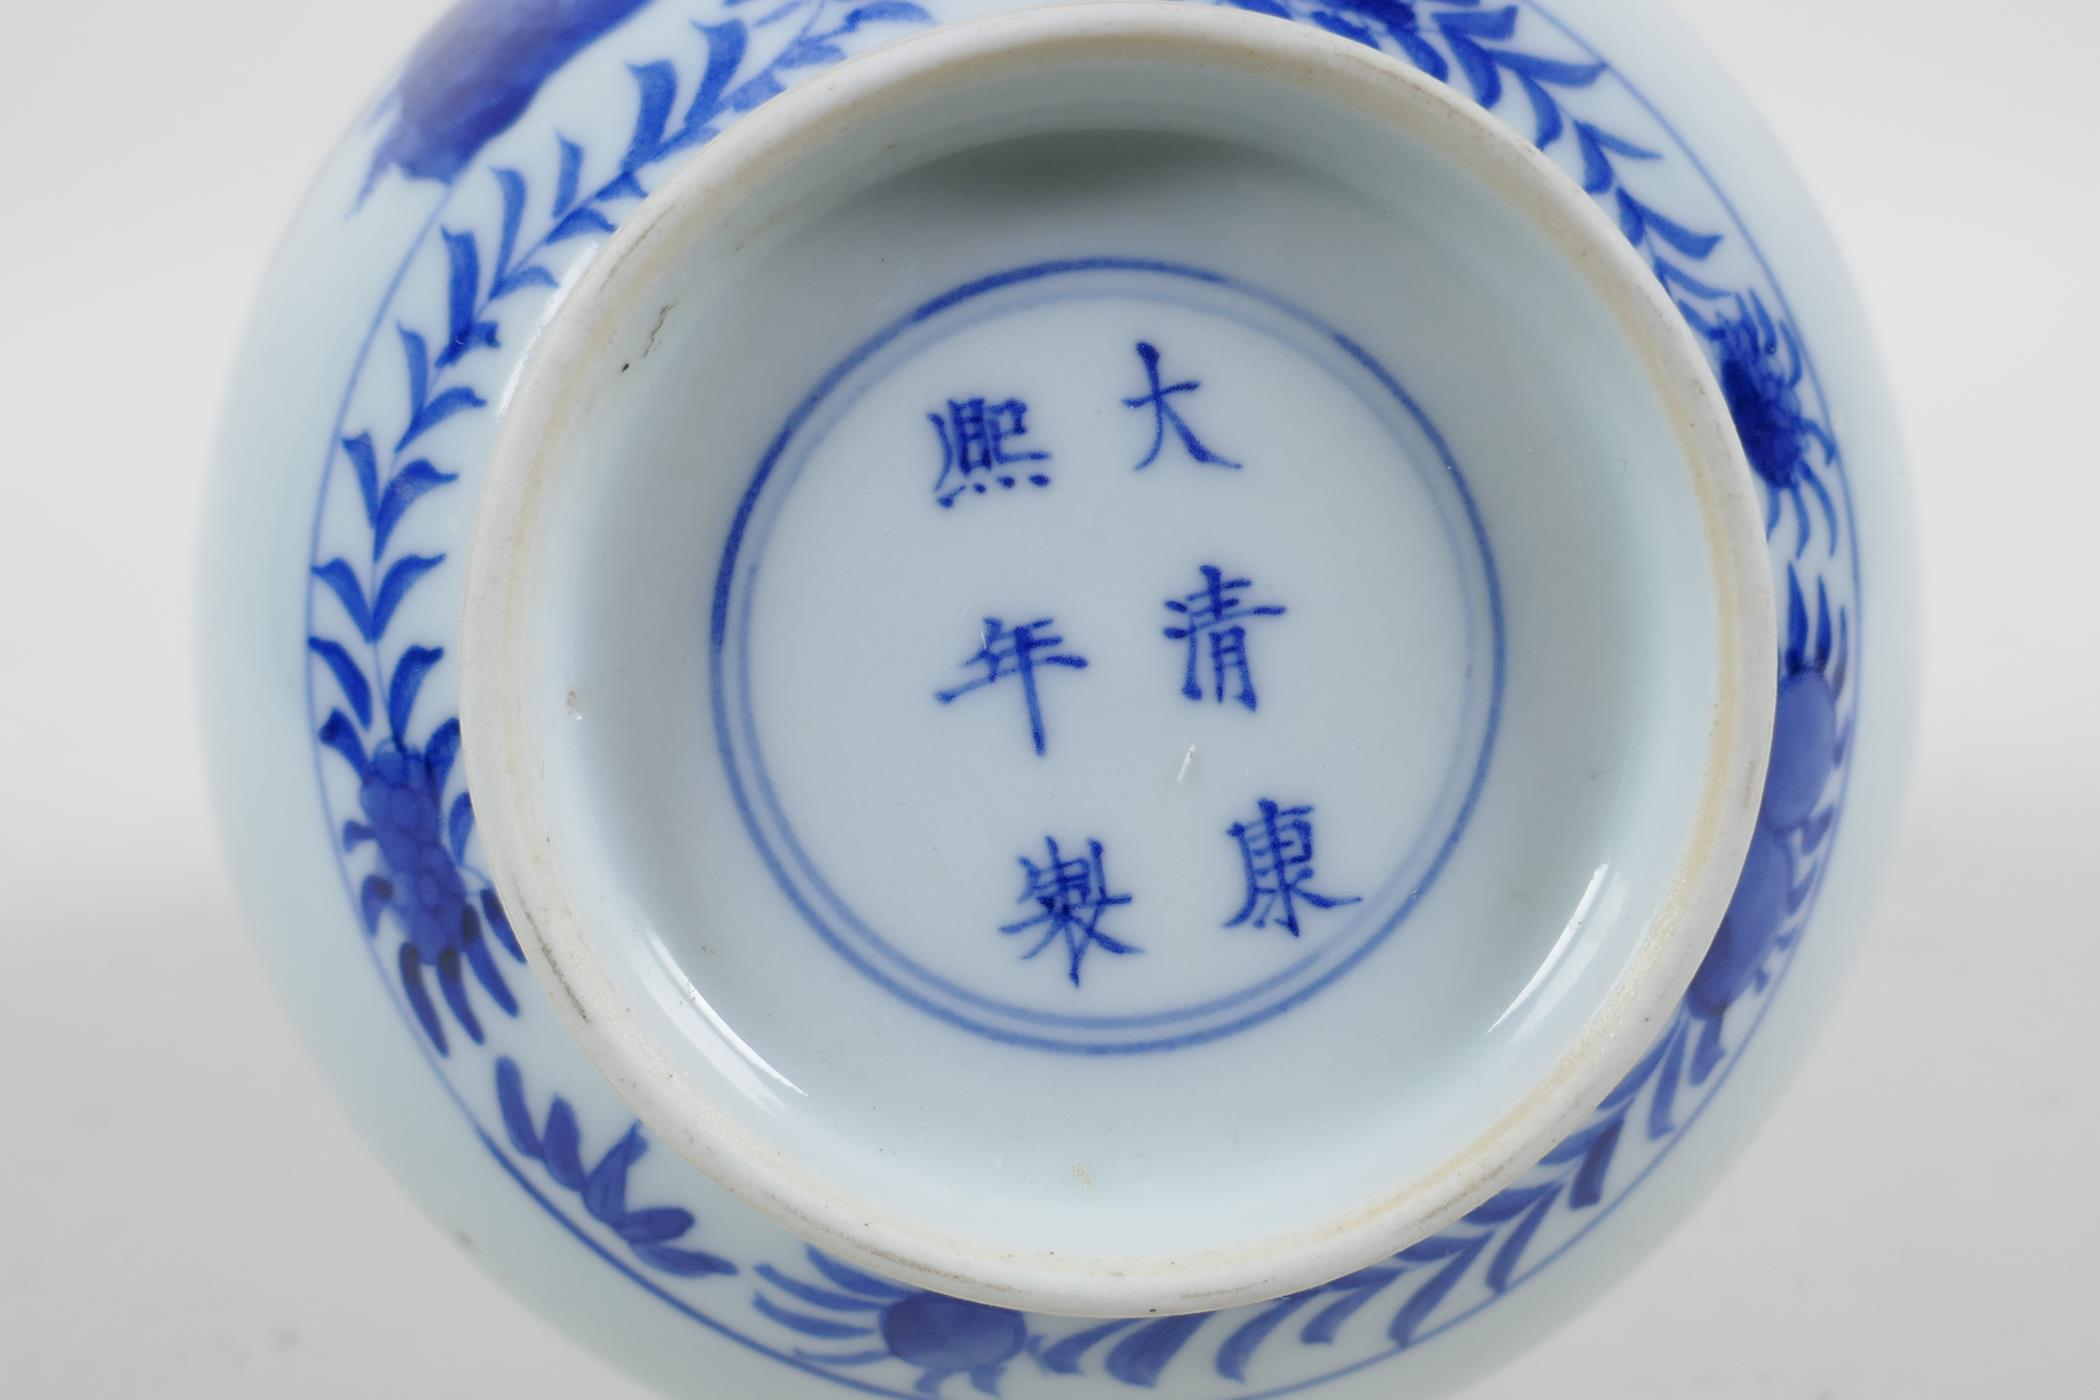 A Chinese blue and white porcelain bottle vase decorated with travellers in a landscape, 6 character - Image 5 of 5